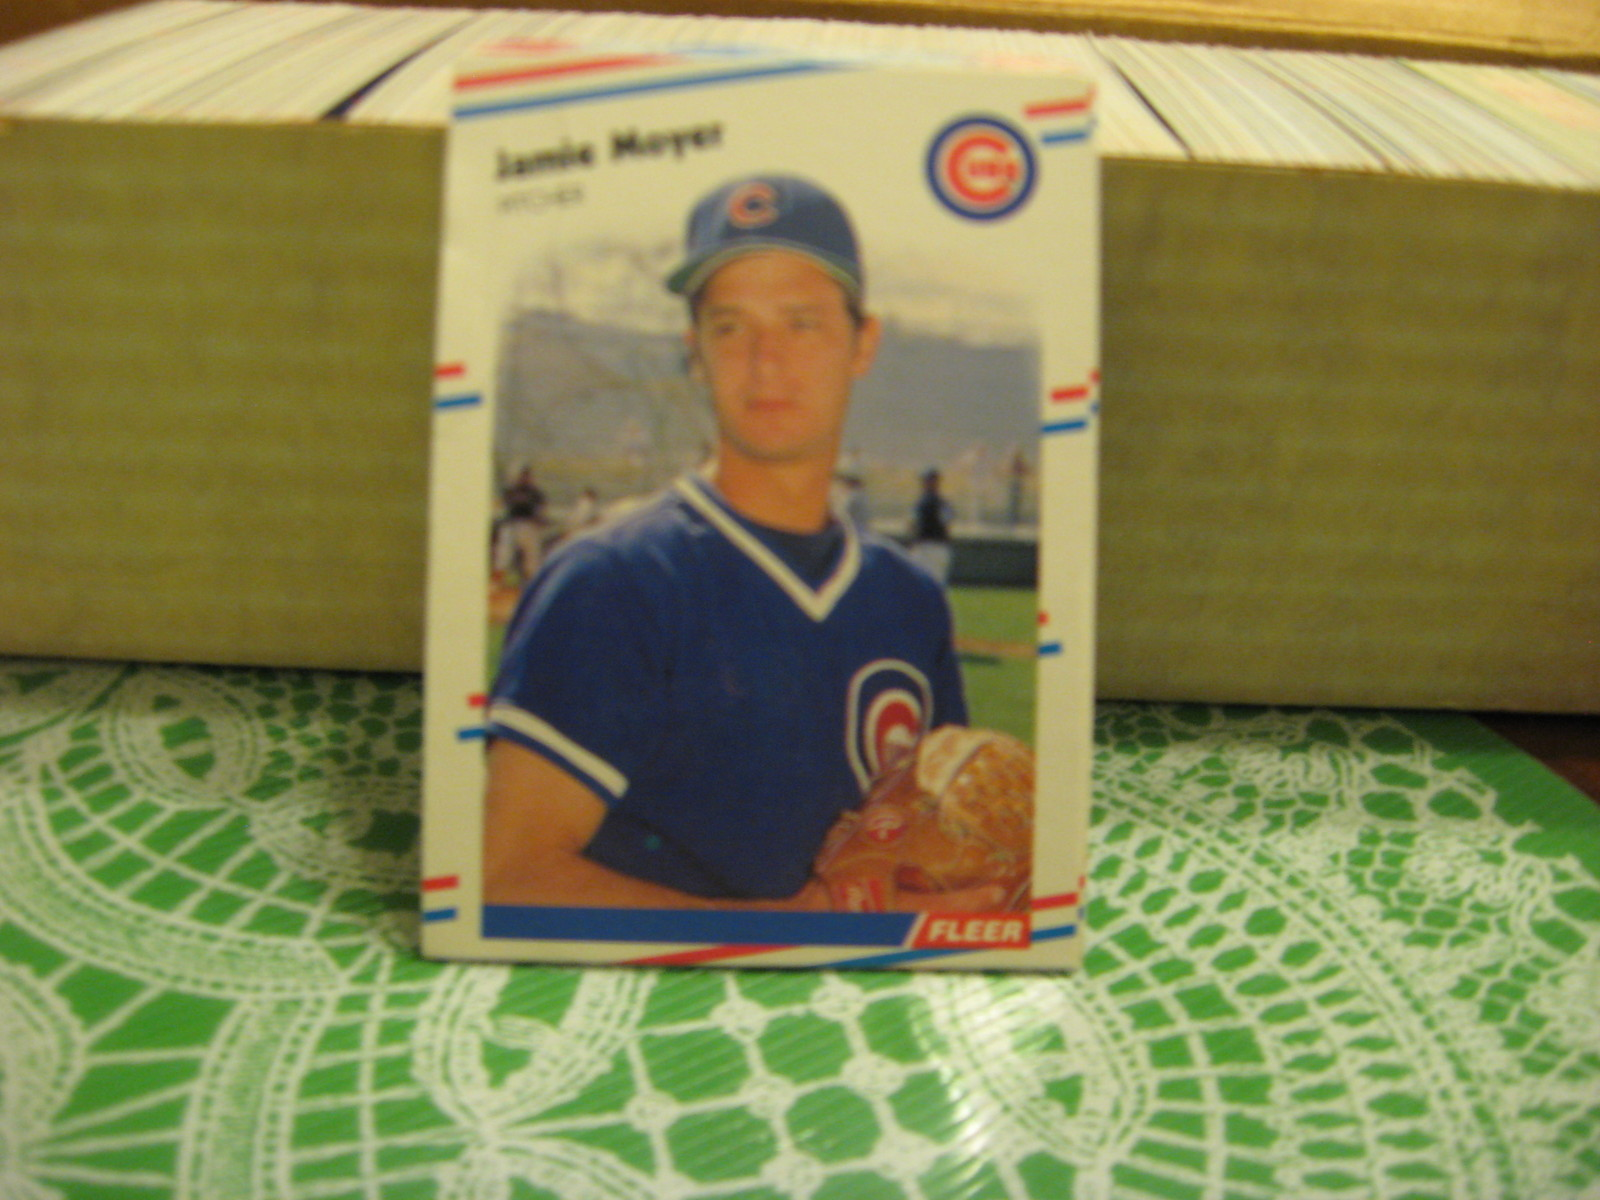 FLEER 1988 COMPLETE SET OF LOGO STICKERS & TRADING CARDS